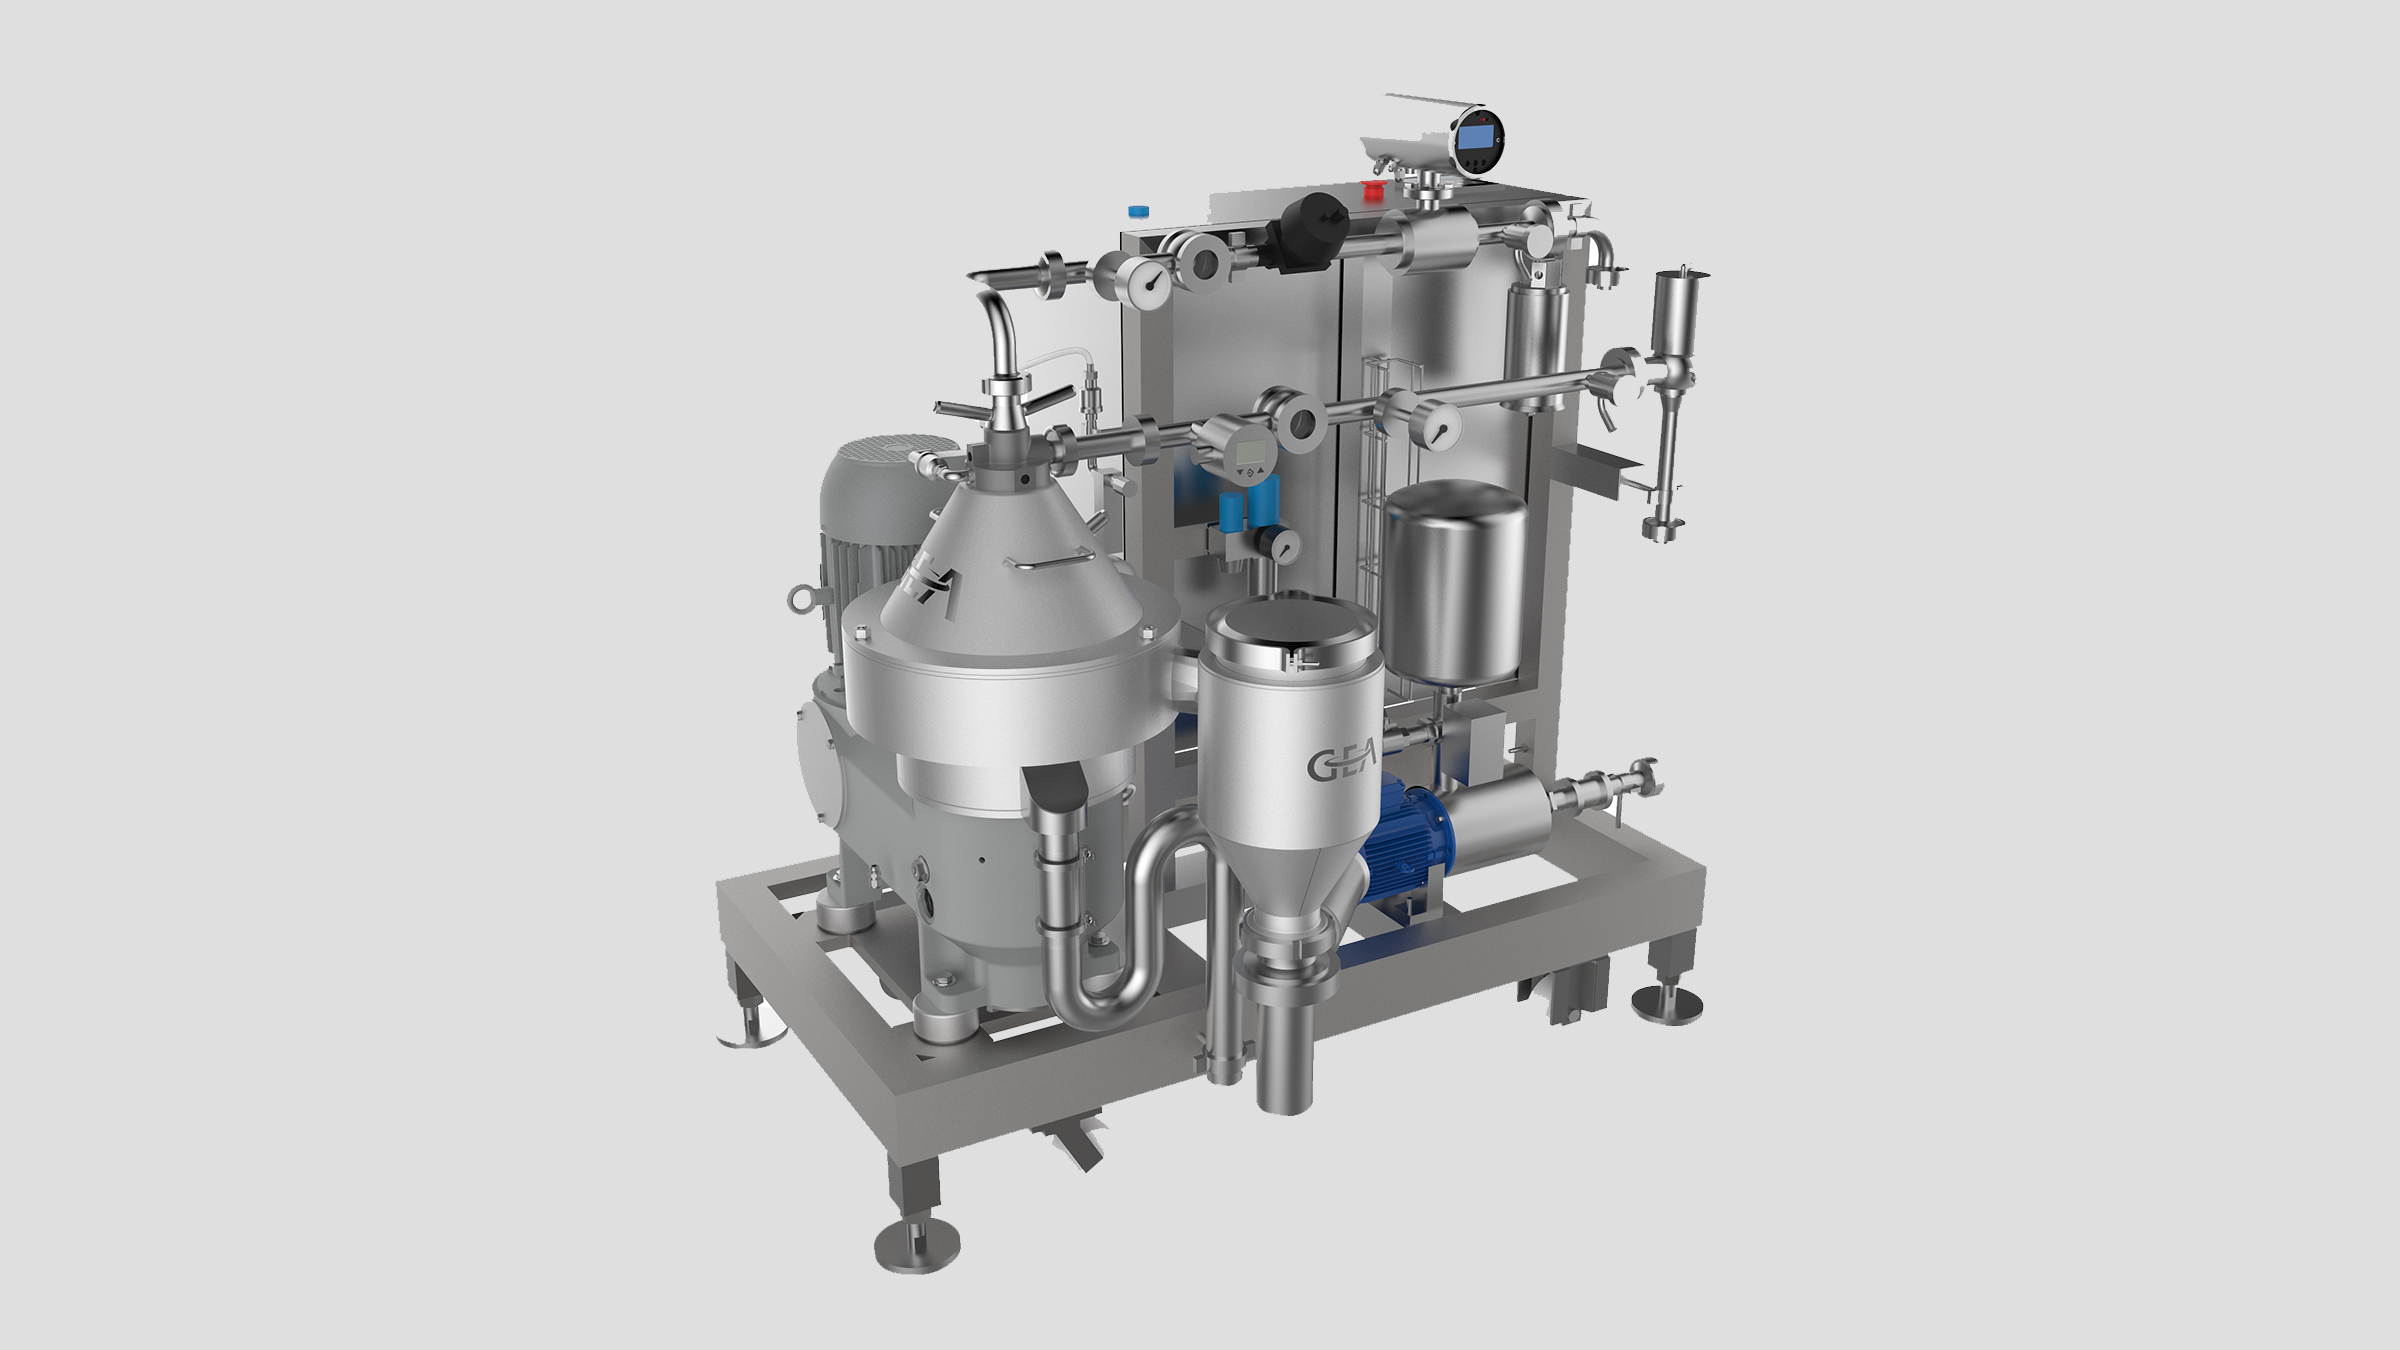 GEA brewpub separator skid for craft beer